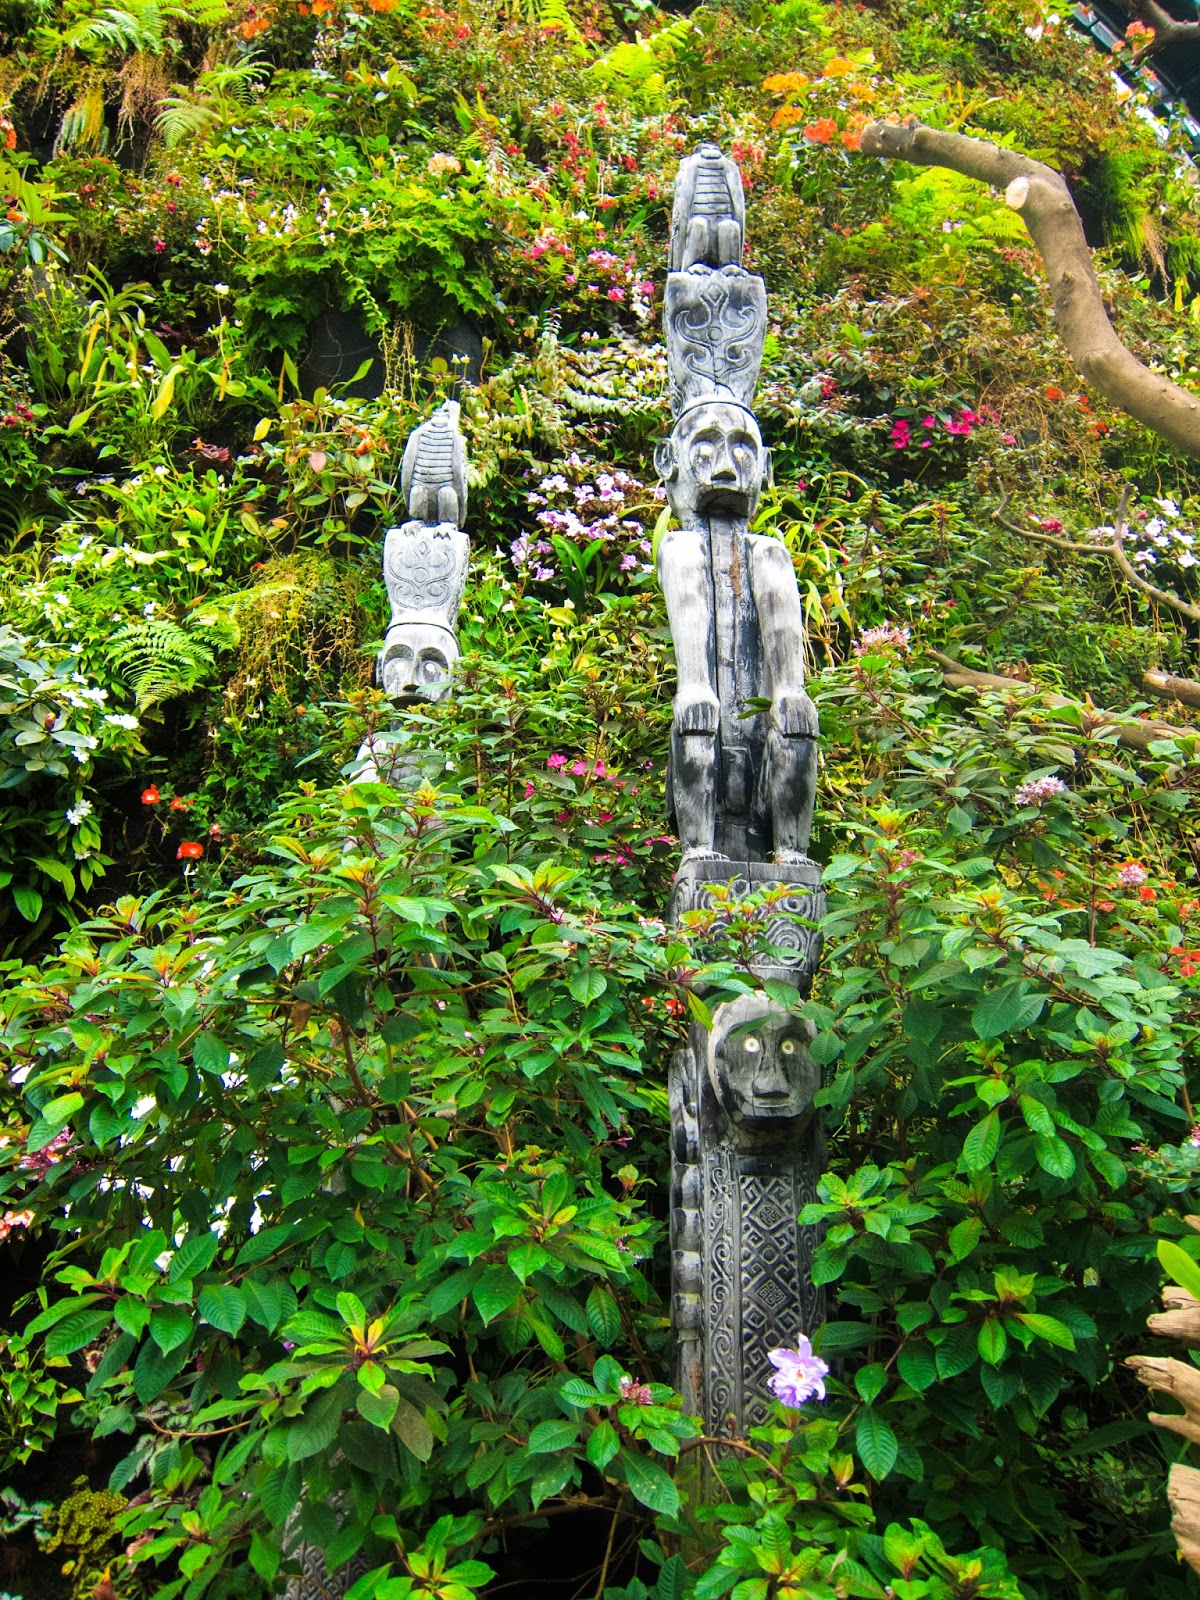 Monkey statues surrounded by colourful flowers on mountain wall in Cloud Forest, Gardens by the Bay in Singapore | Svelte Salivations - Travel